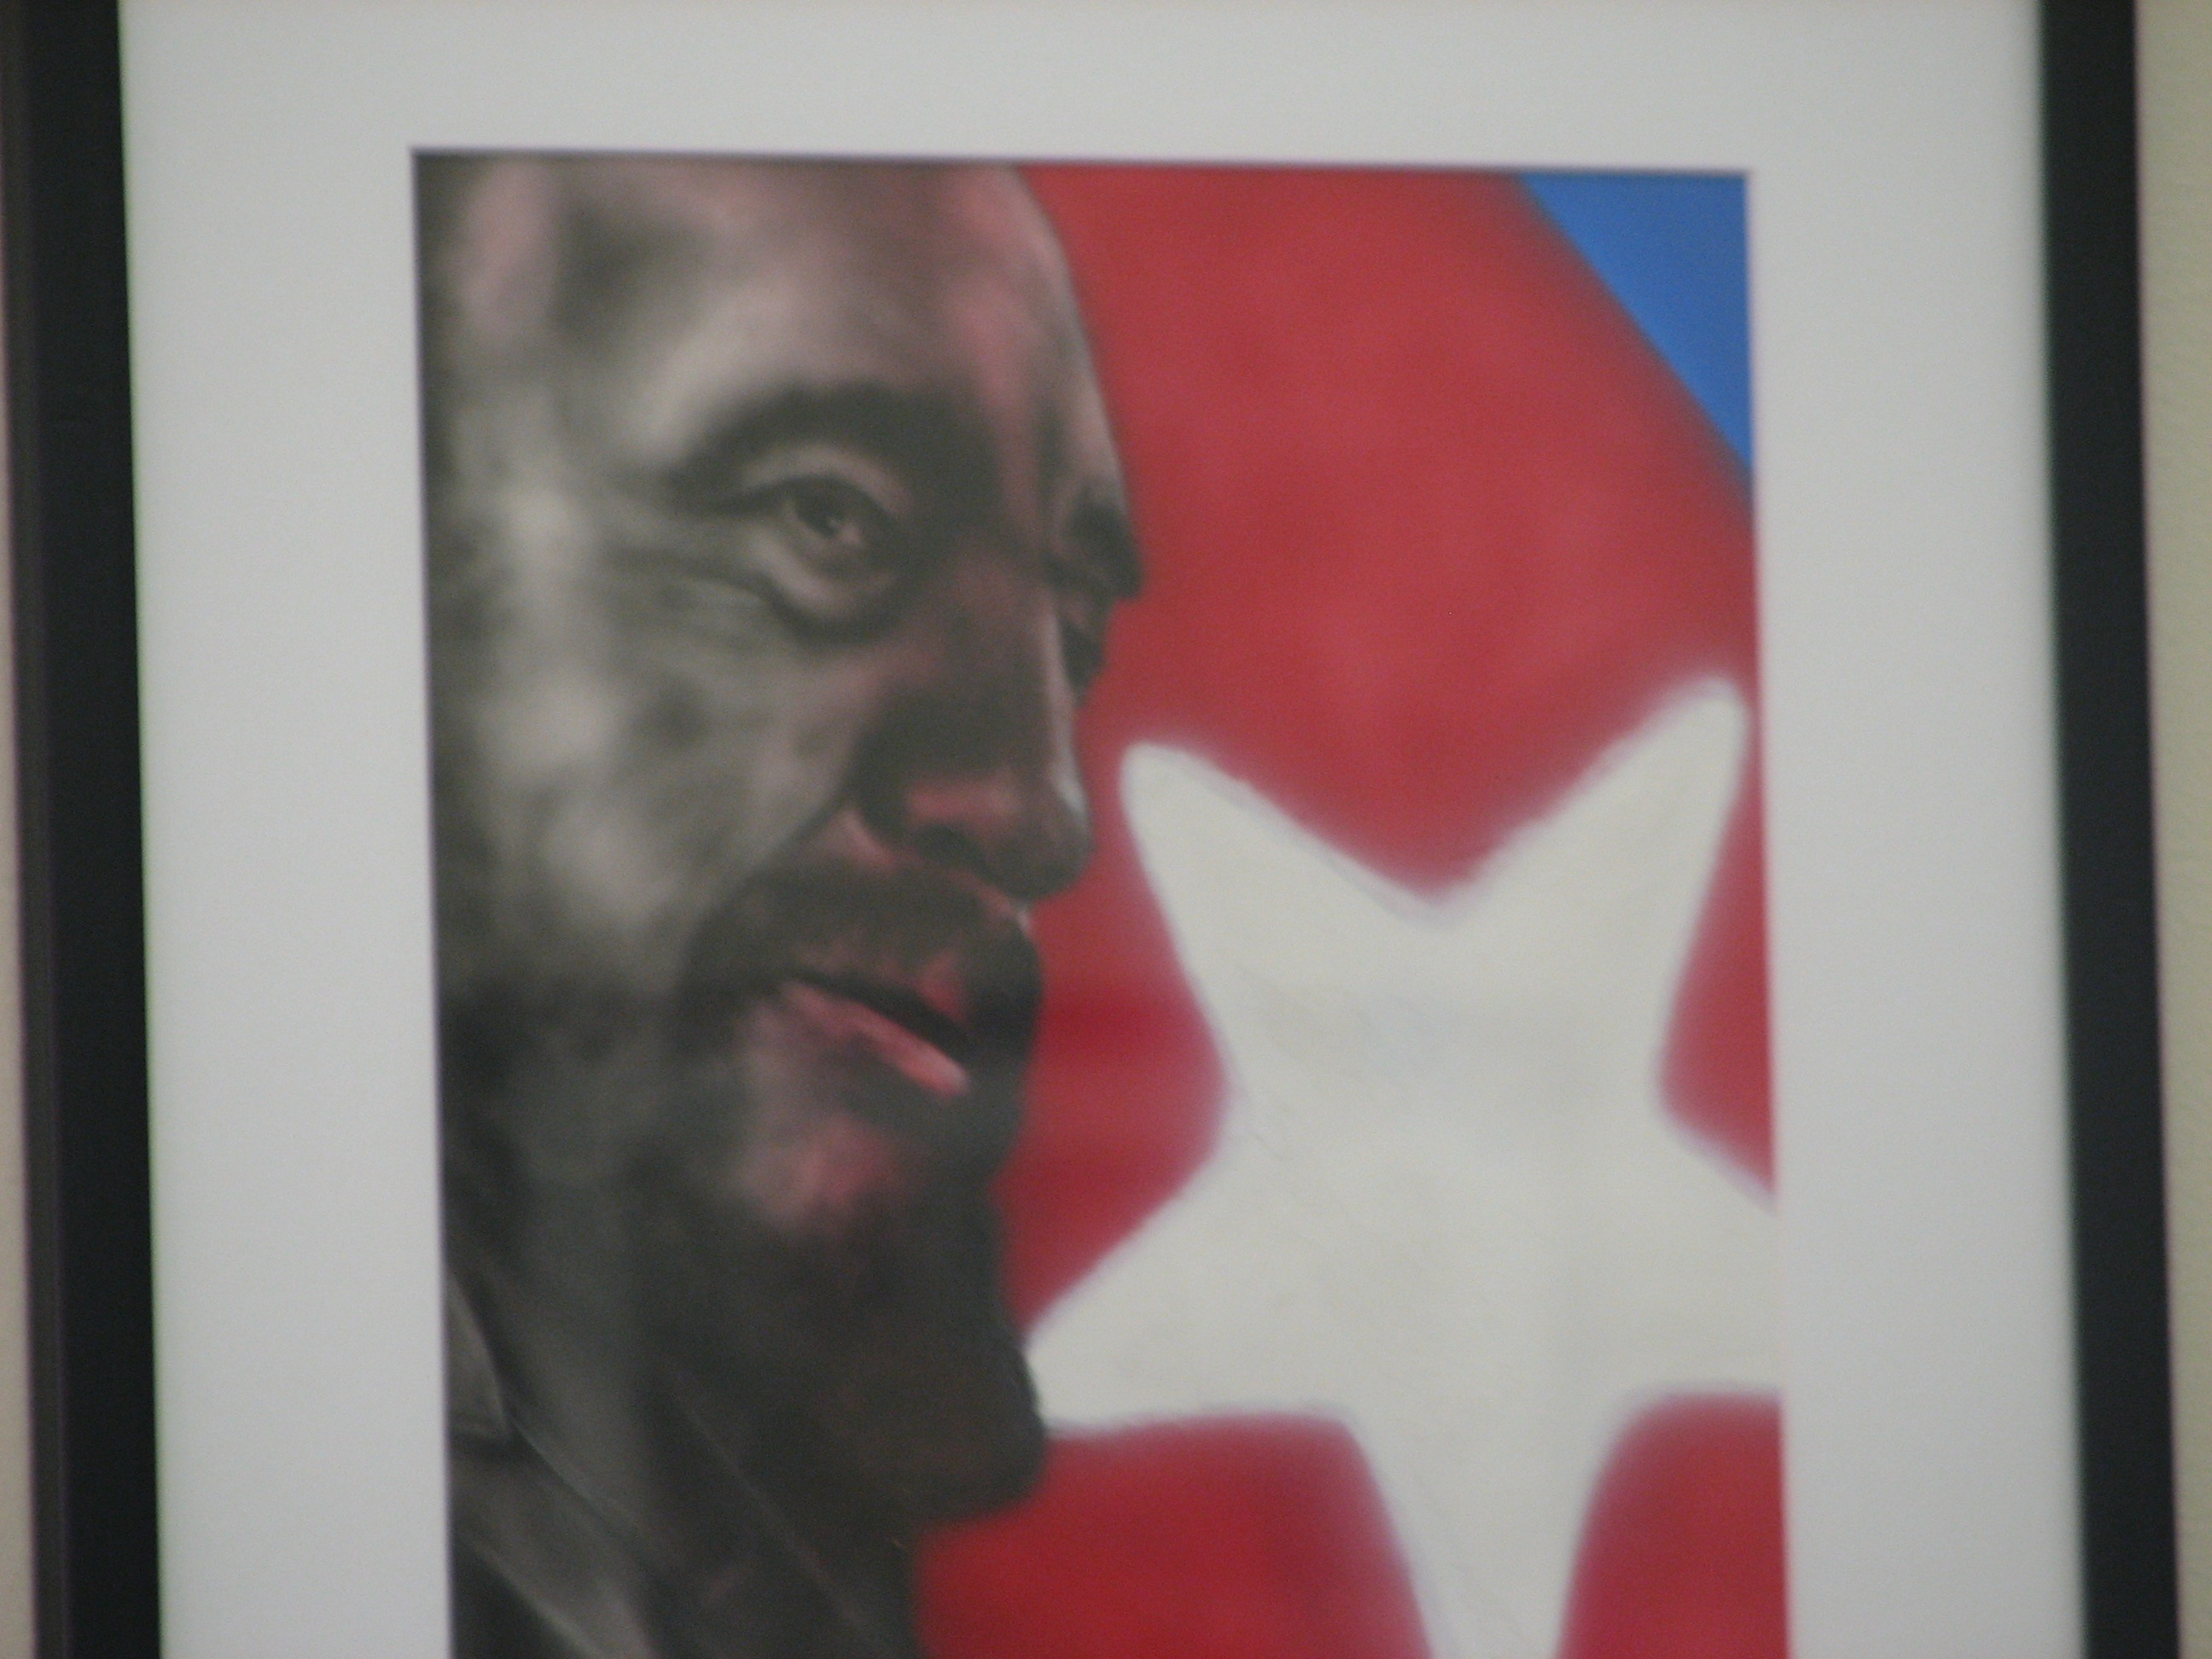 Painting by Antonio Guerrero, one of the Cuban 5